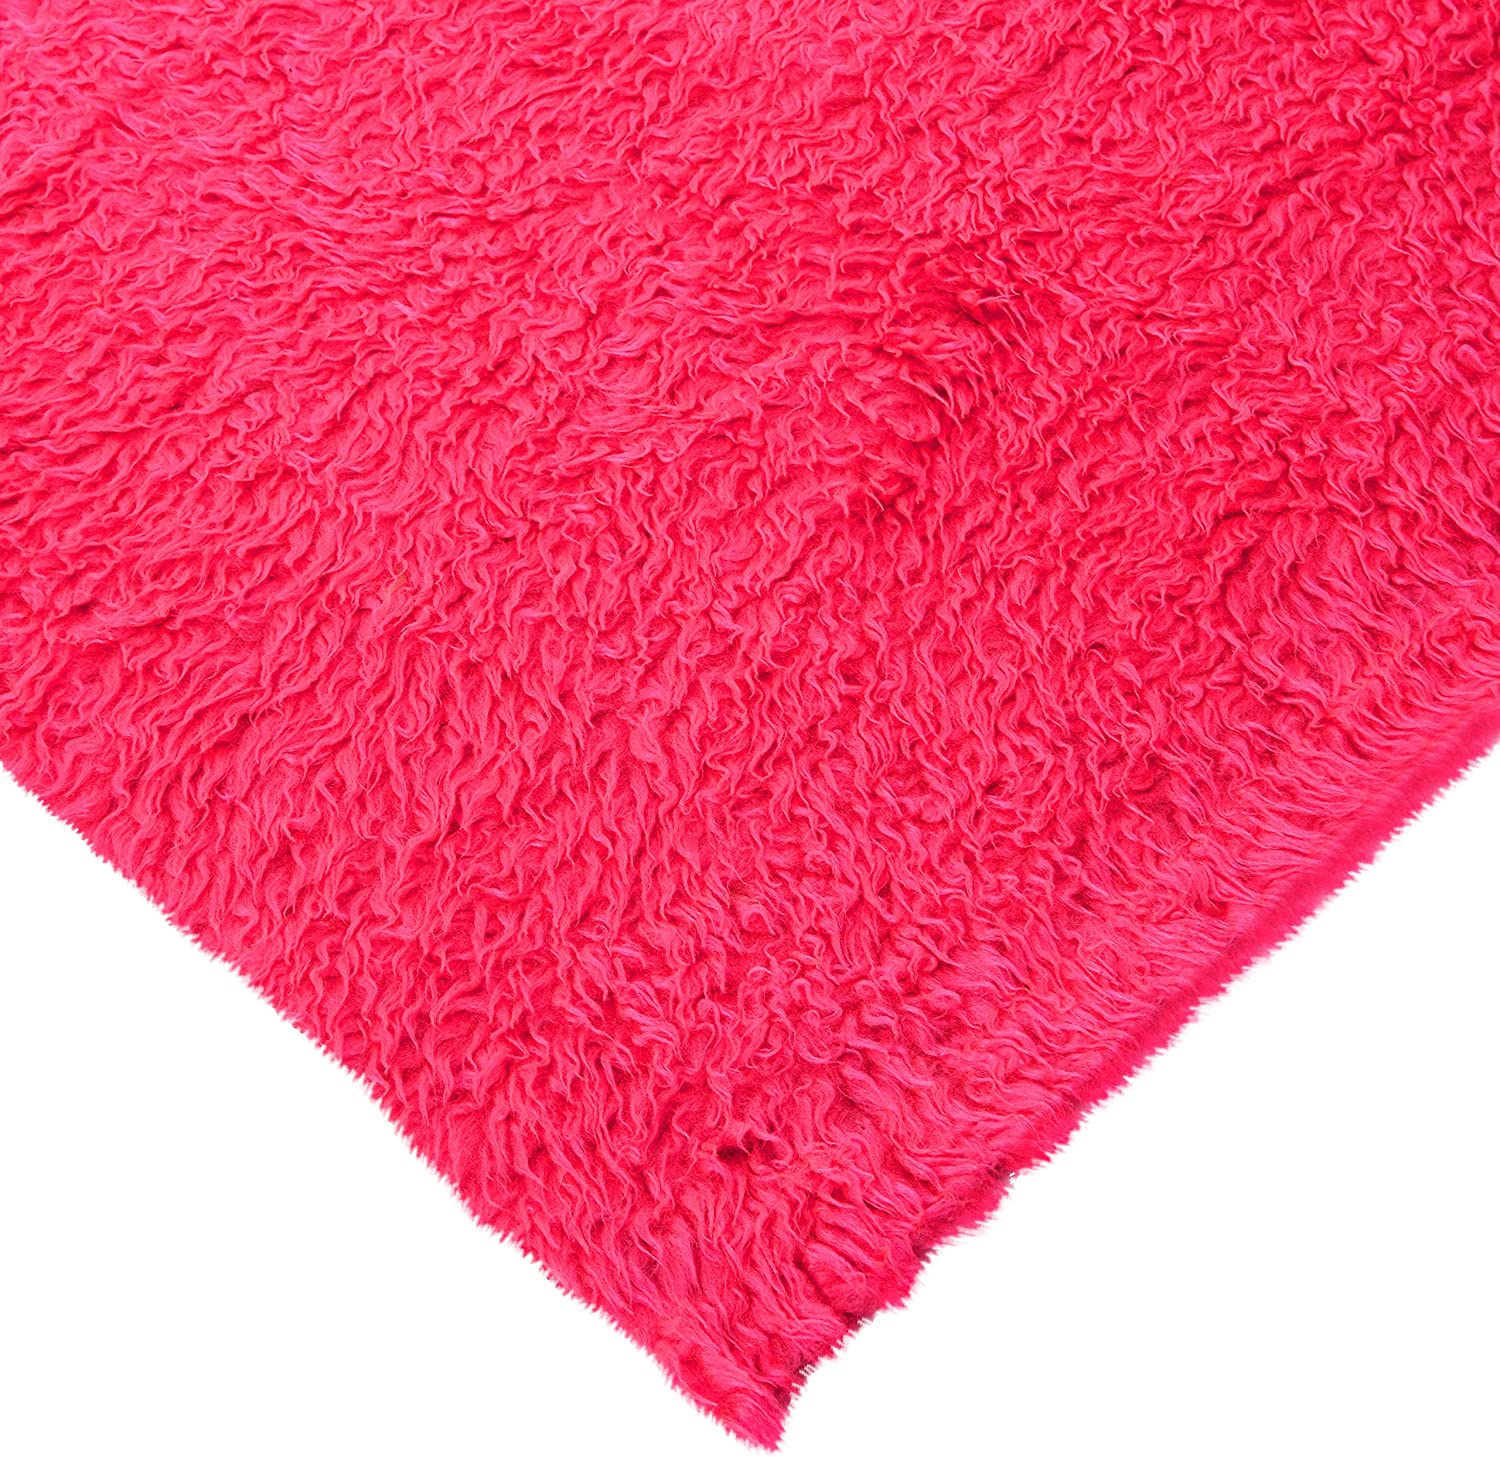 CERISE PINK CURLY Teddy Faux Fur Fabric Material